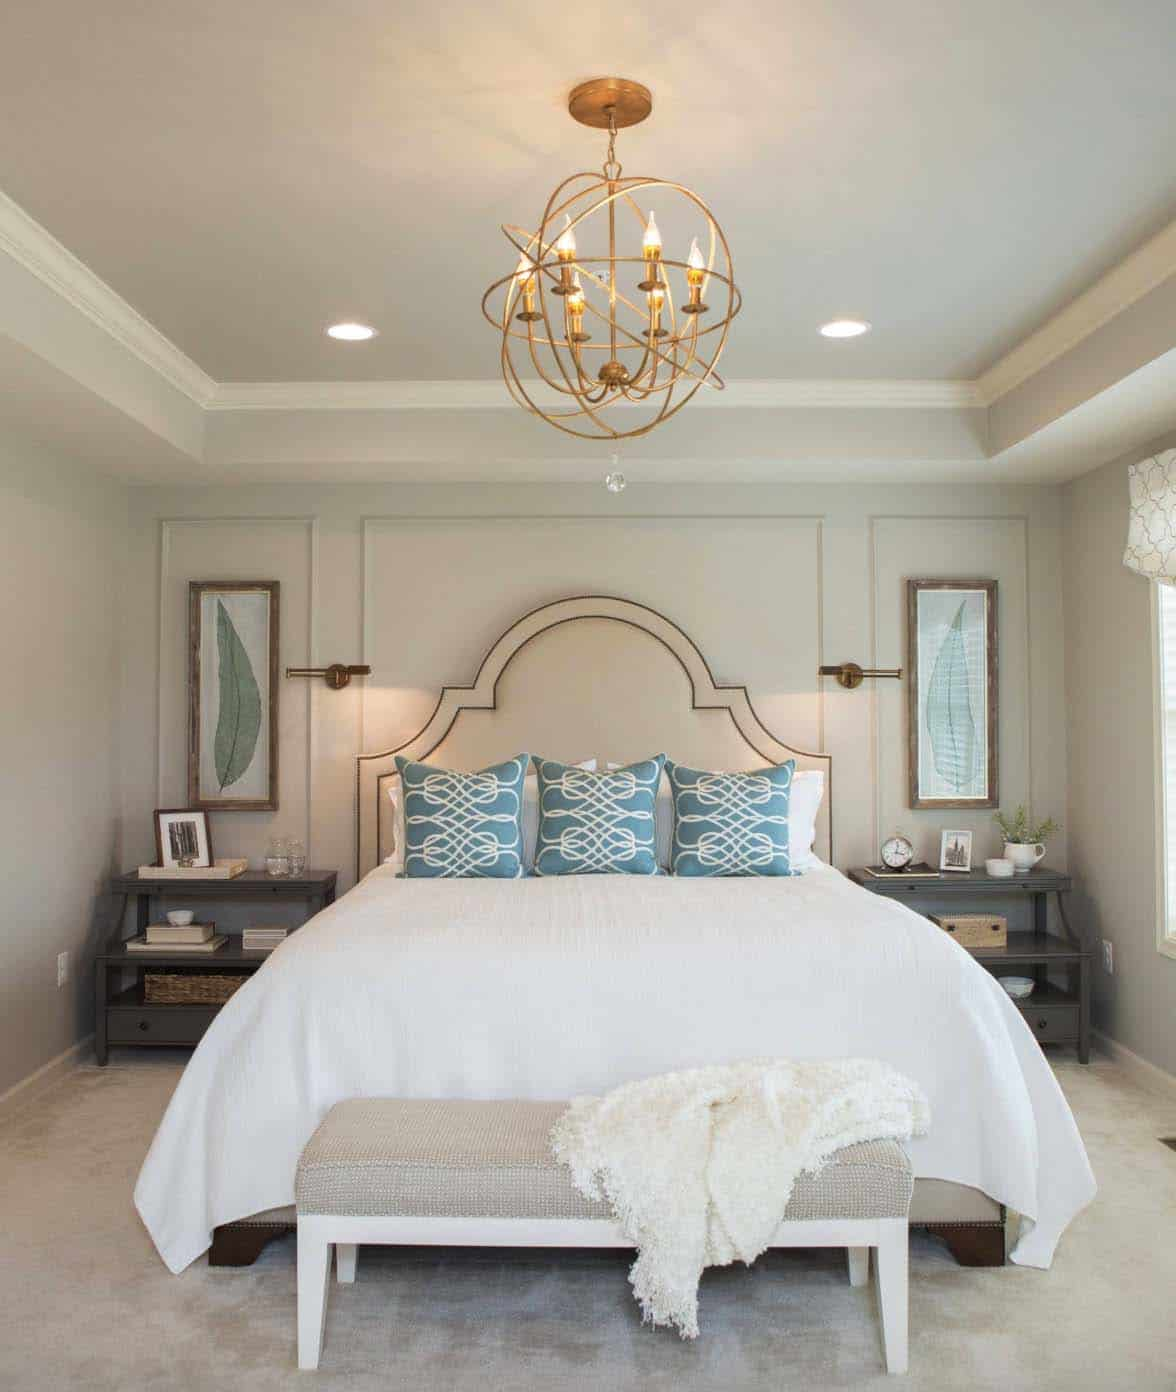 Pin On Master Bedroom Ideas: 20+ Serene And Elegant Master Bedroom Decorating Ideas